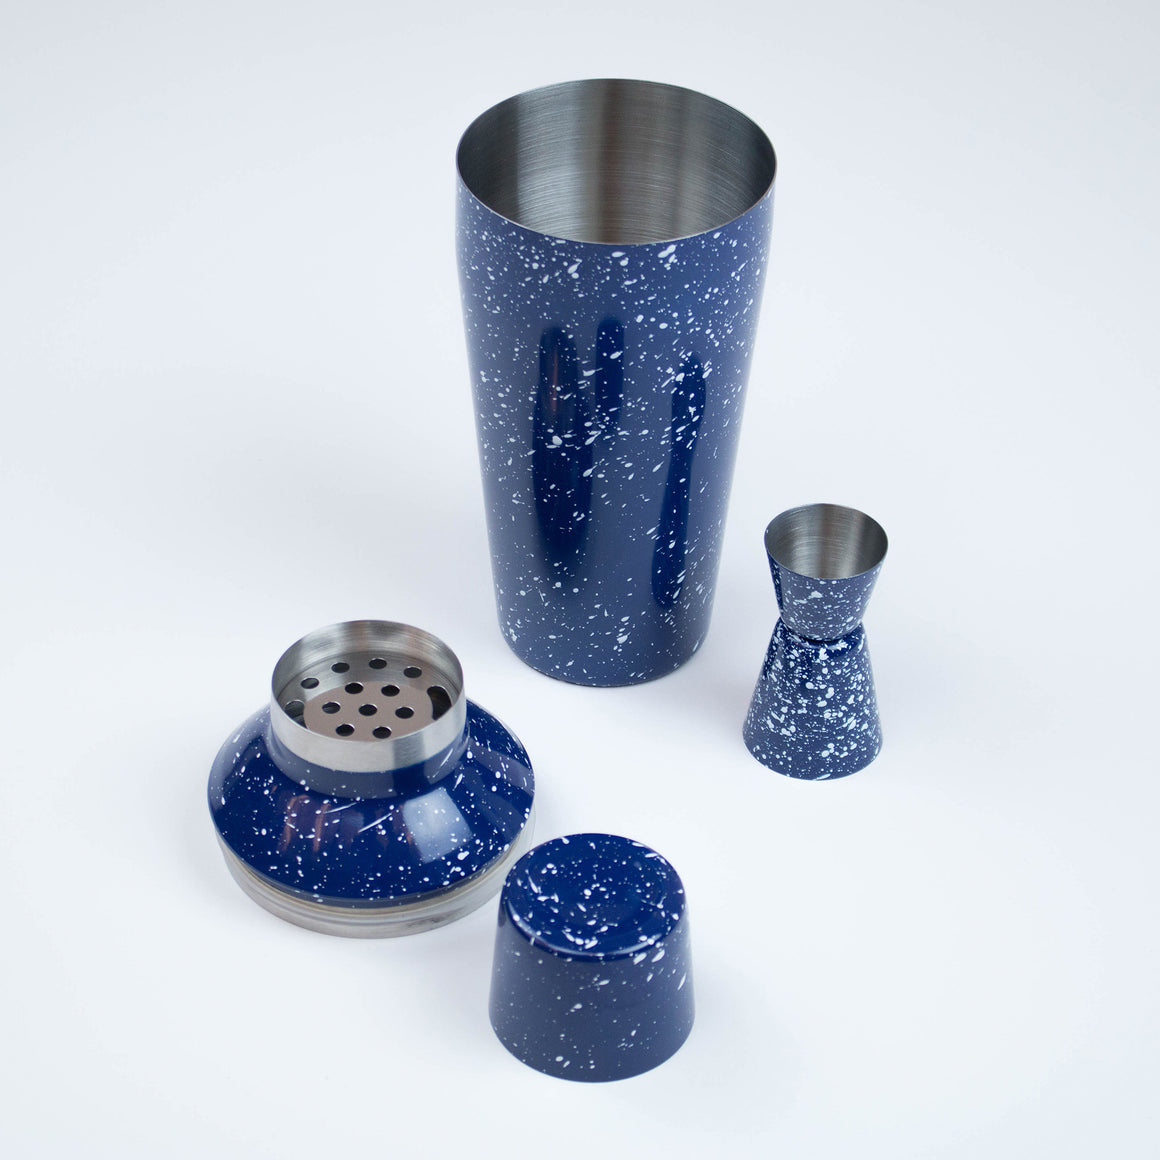 Blue & White Enamel Cocktail Shaker